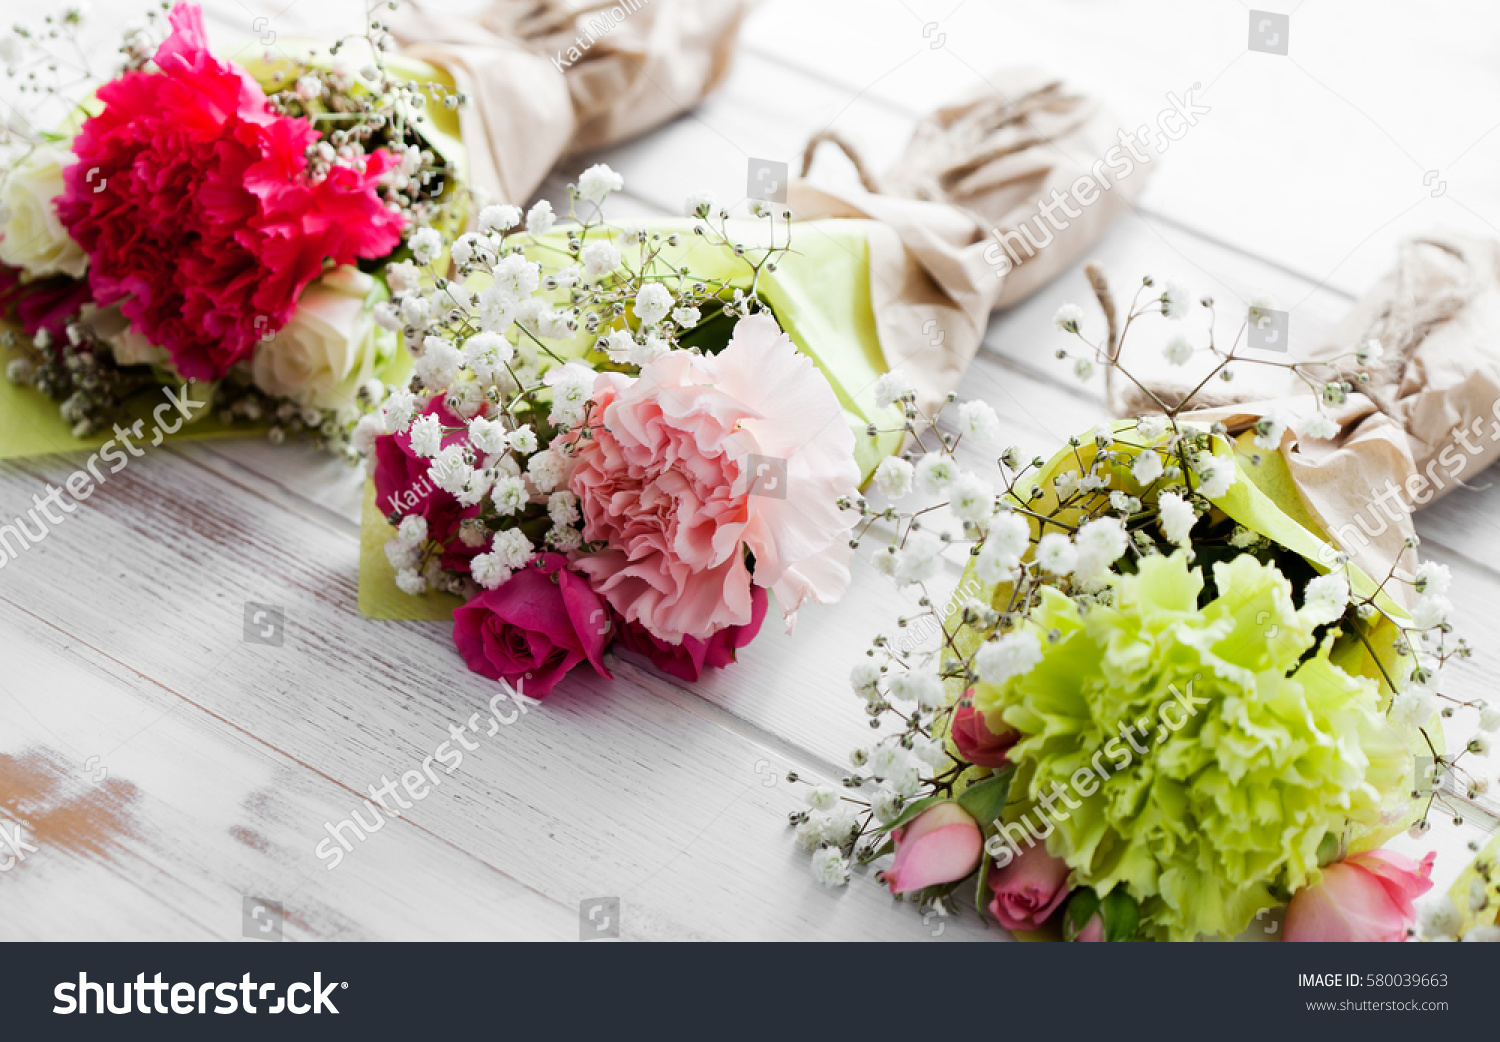 Mini Flower Bouquet Roses Carnation Stock Photo (Download Now ...